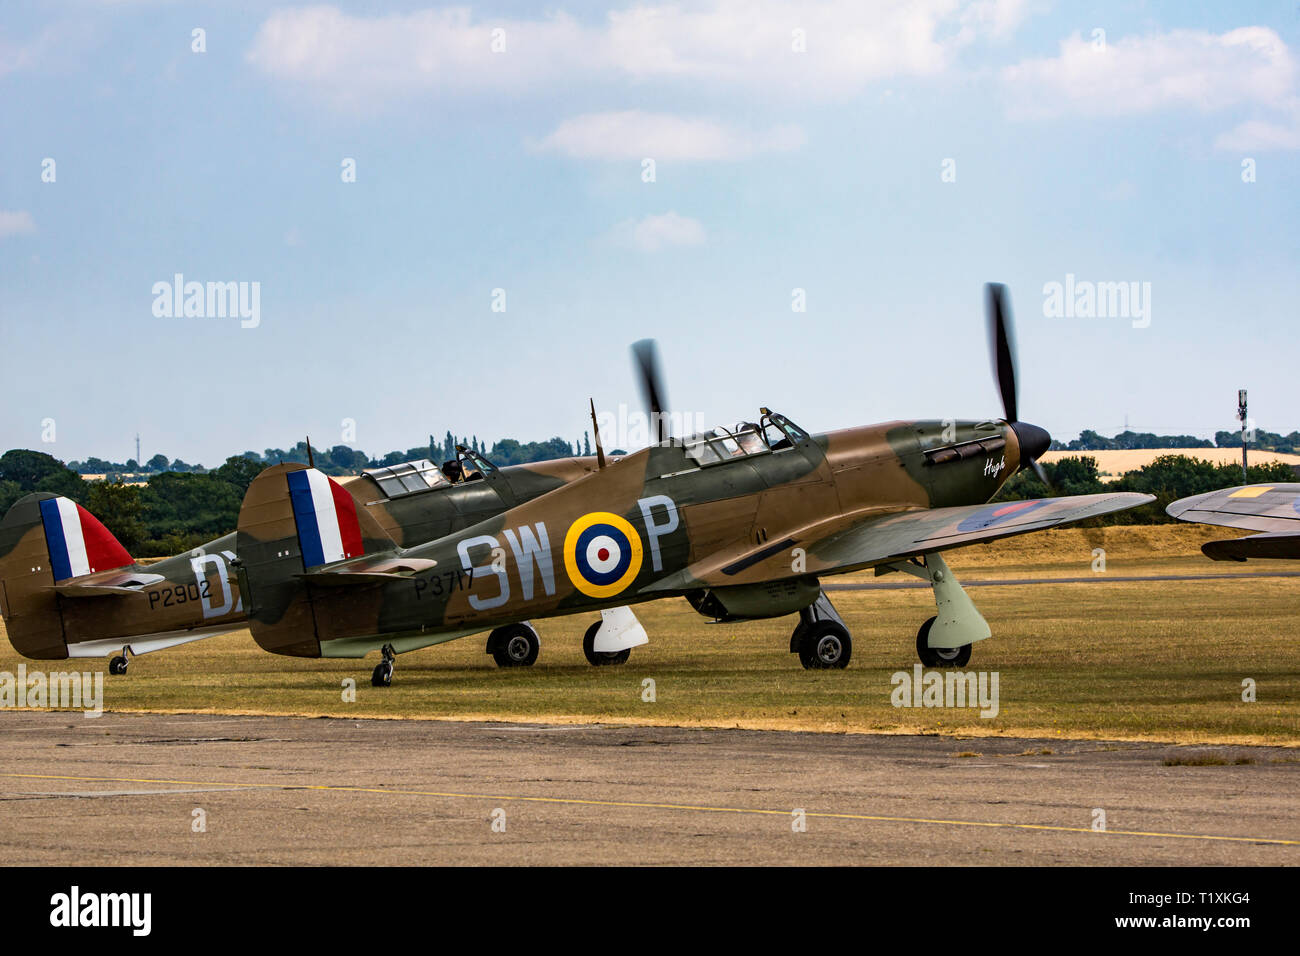 A pair off Hawker Hurricanes ready for takeoff - Stock Image